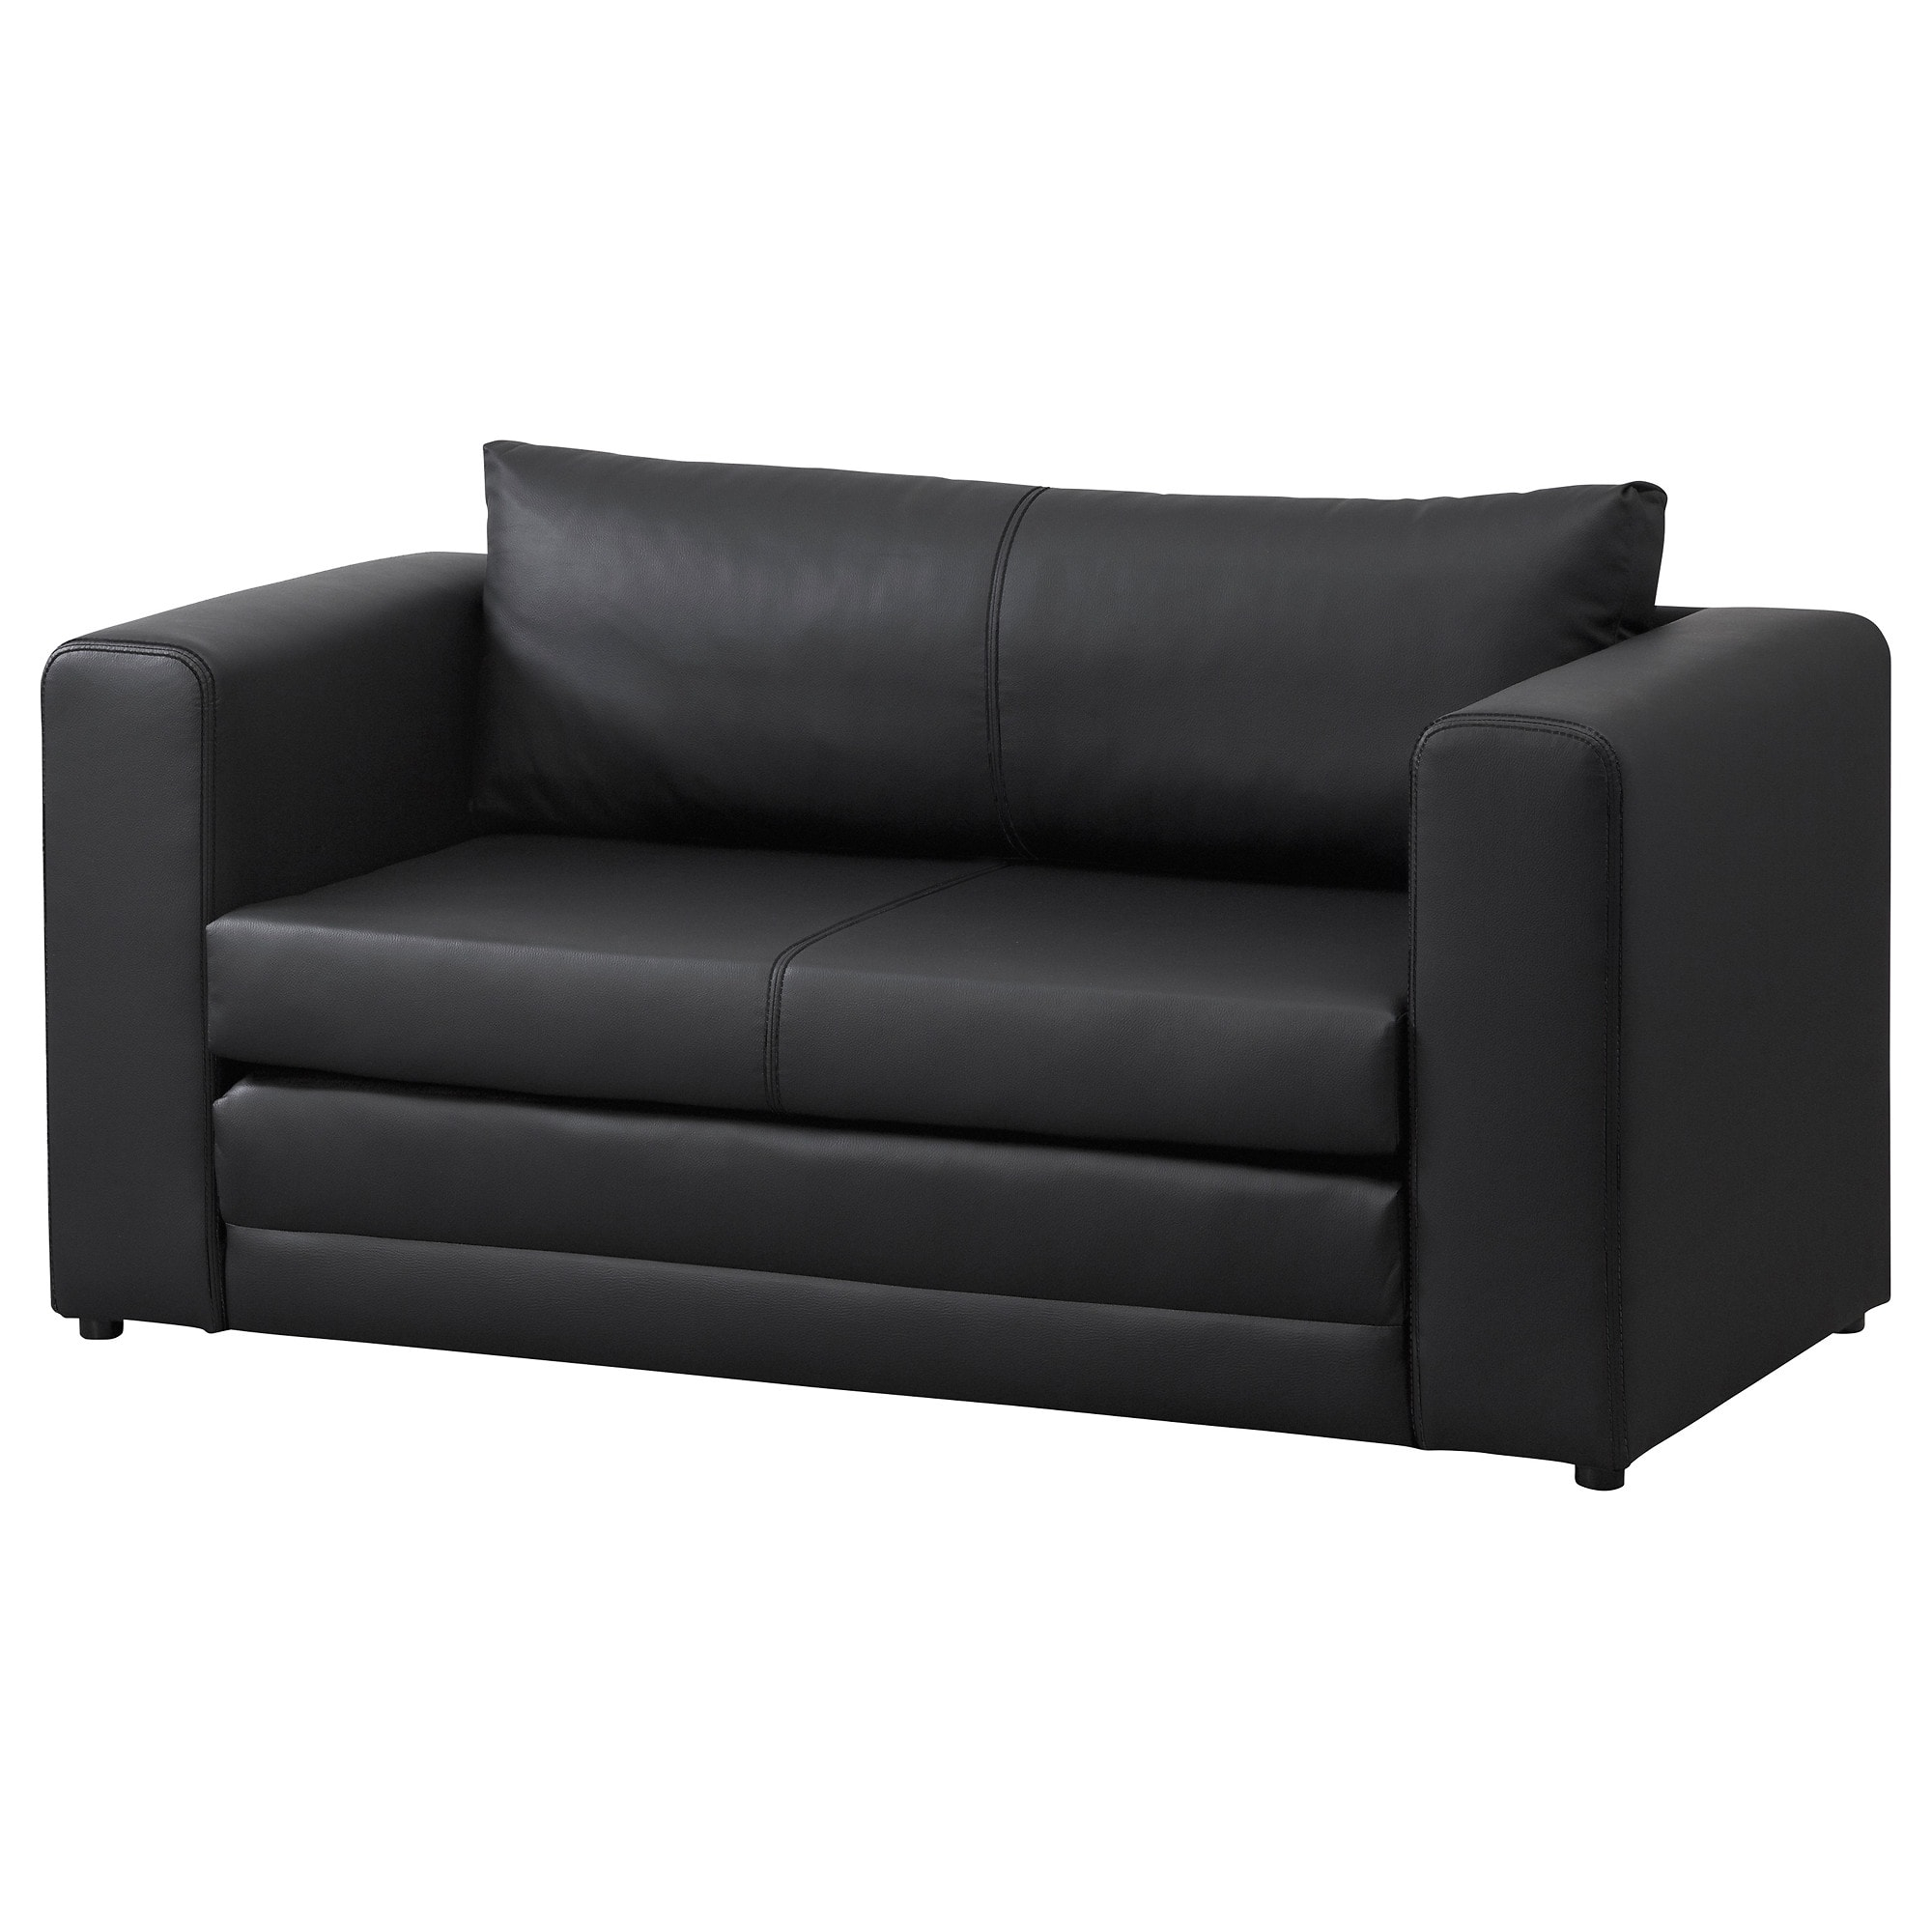 Askeby Two Seat Sofa Bed Black – Ikea With Ikea Sofa Chairs (Image 1 of 25)